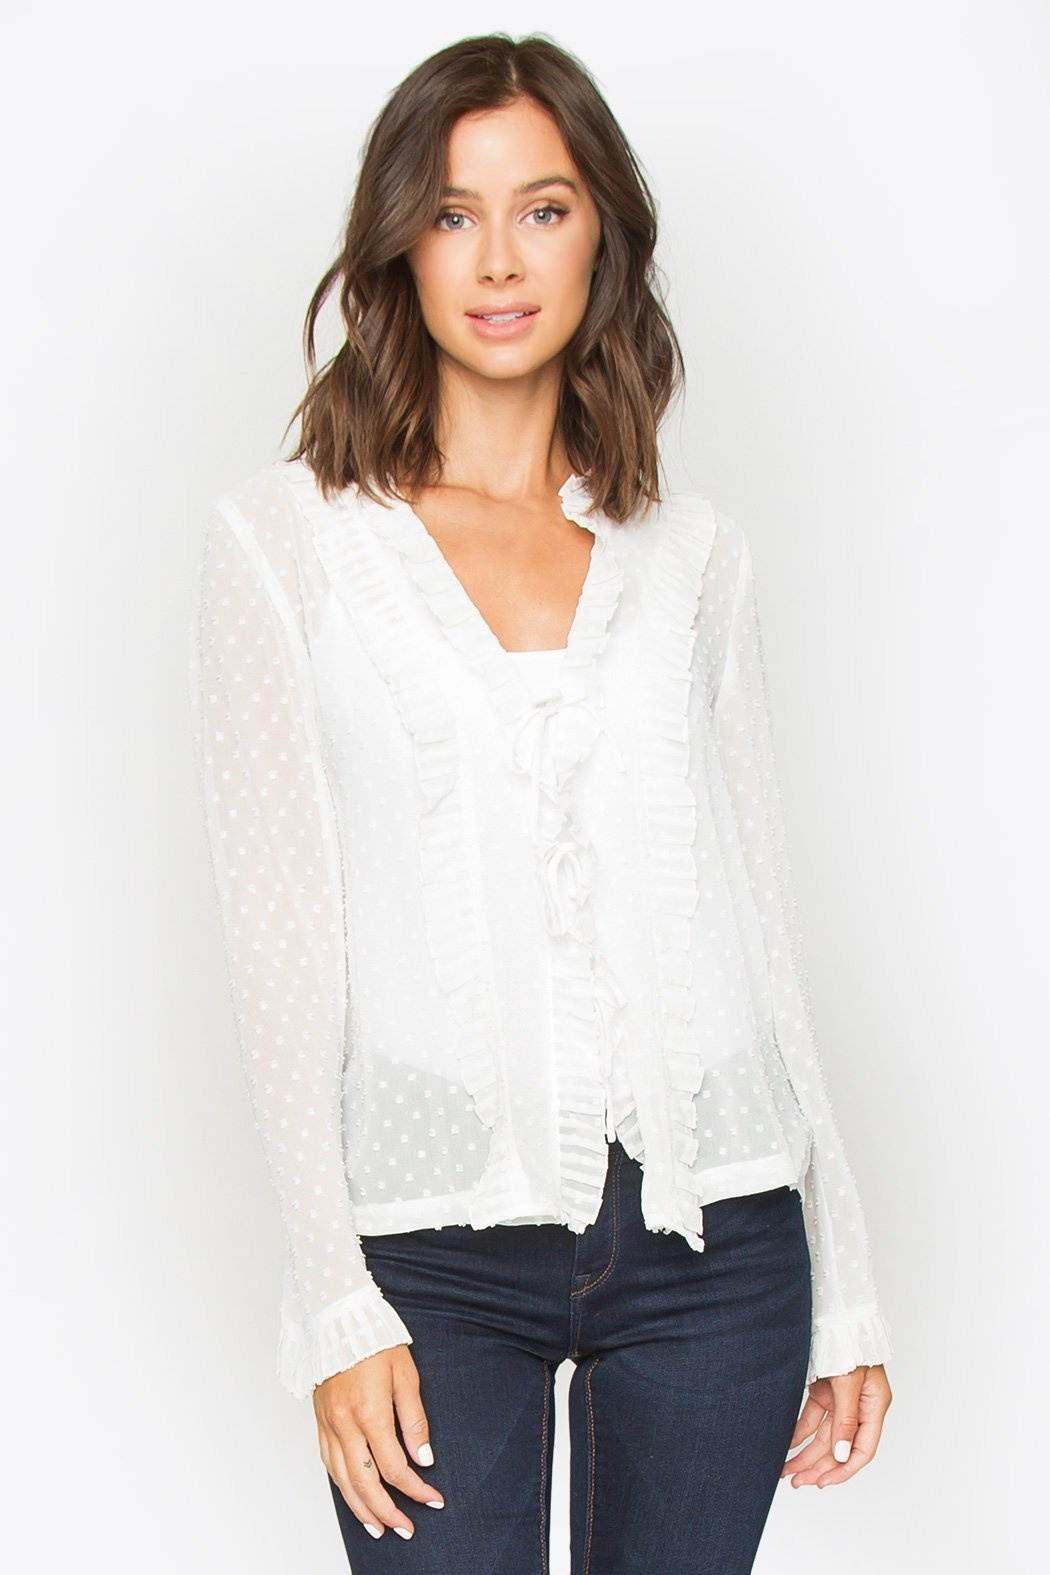 Sugarlips Blouse Loyal Hearts L/SLv w/ Open Front Ties & Ruffle Detail